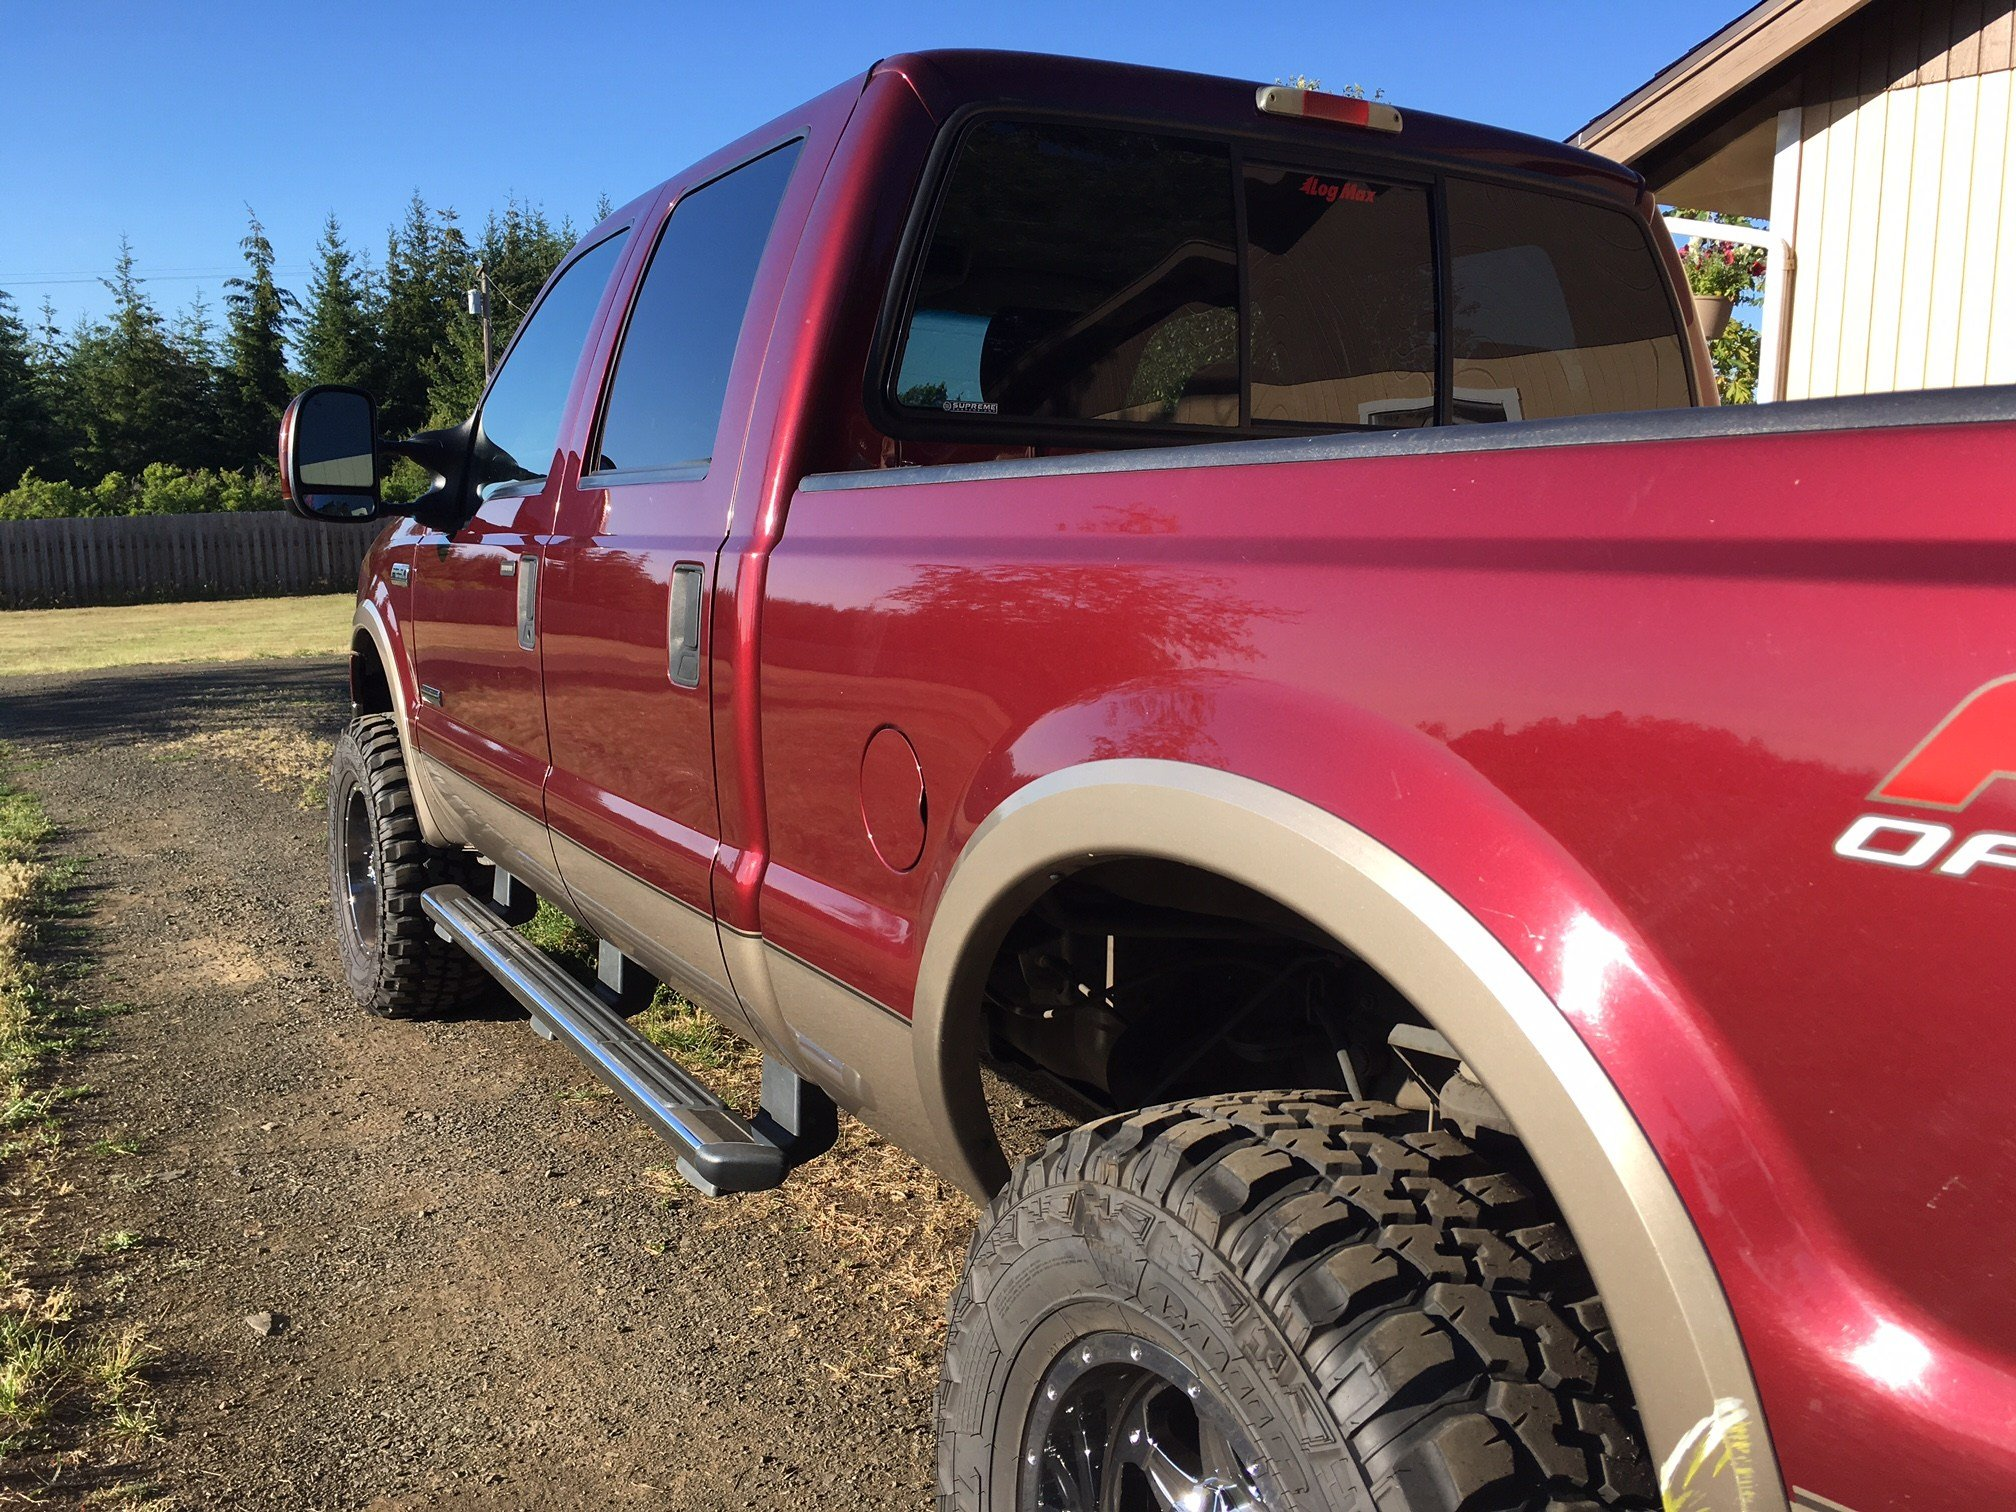 The truck that was stolen from a rural Polk County home Monday, and recovered in Salem Tuesday. (KPTV)